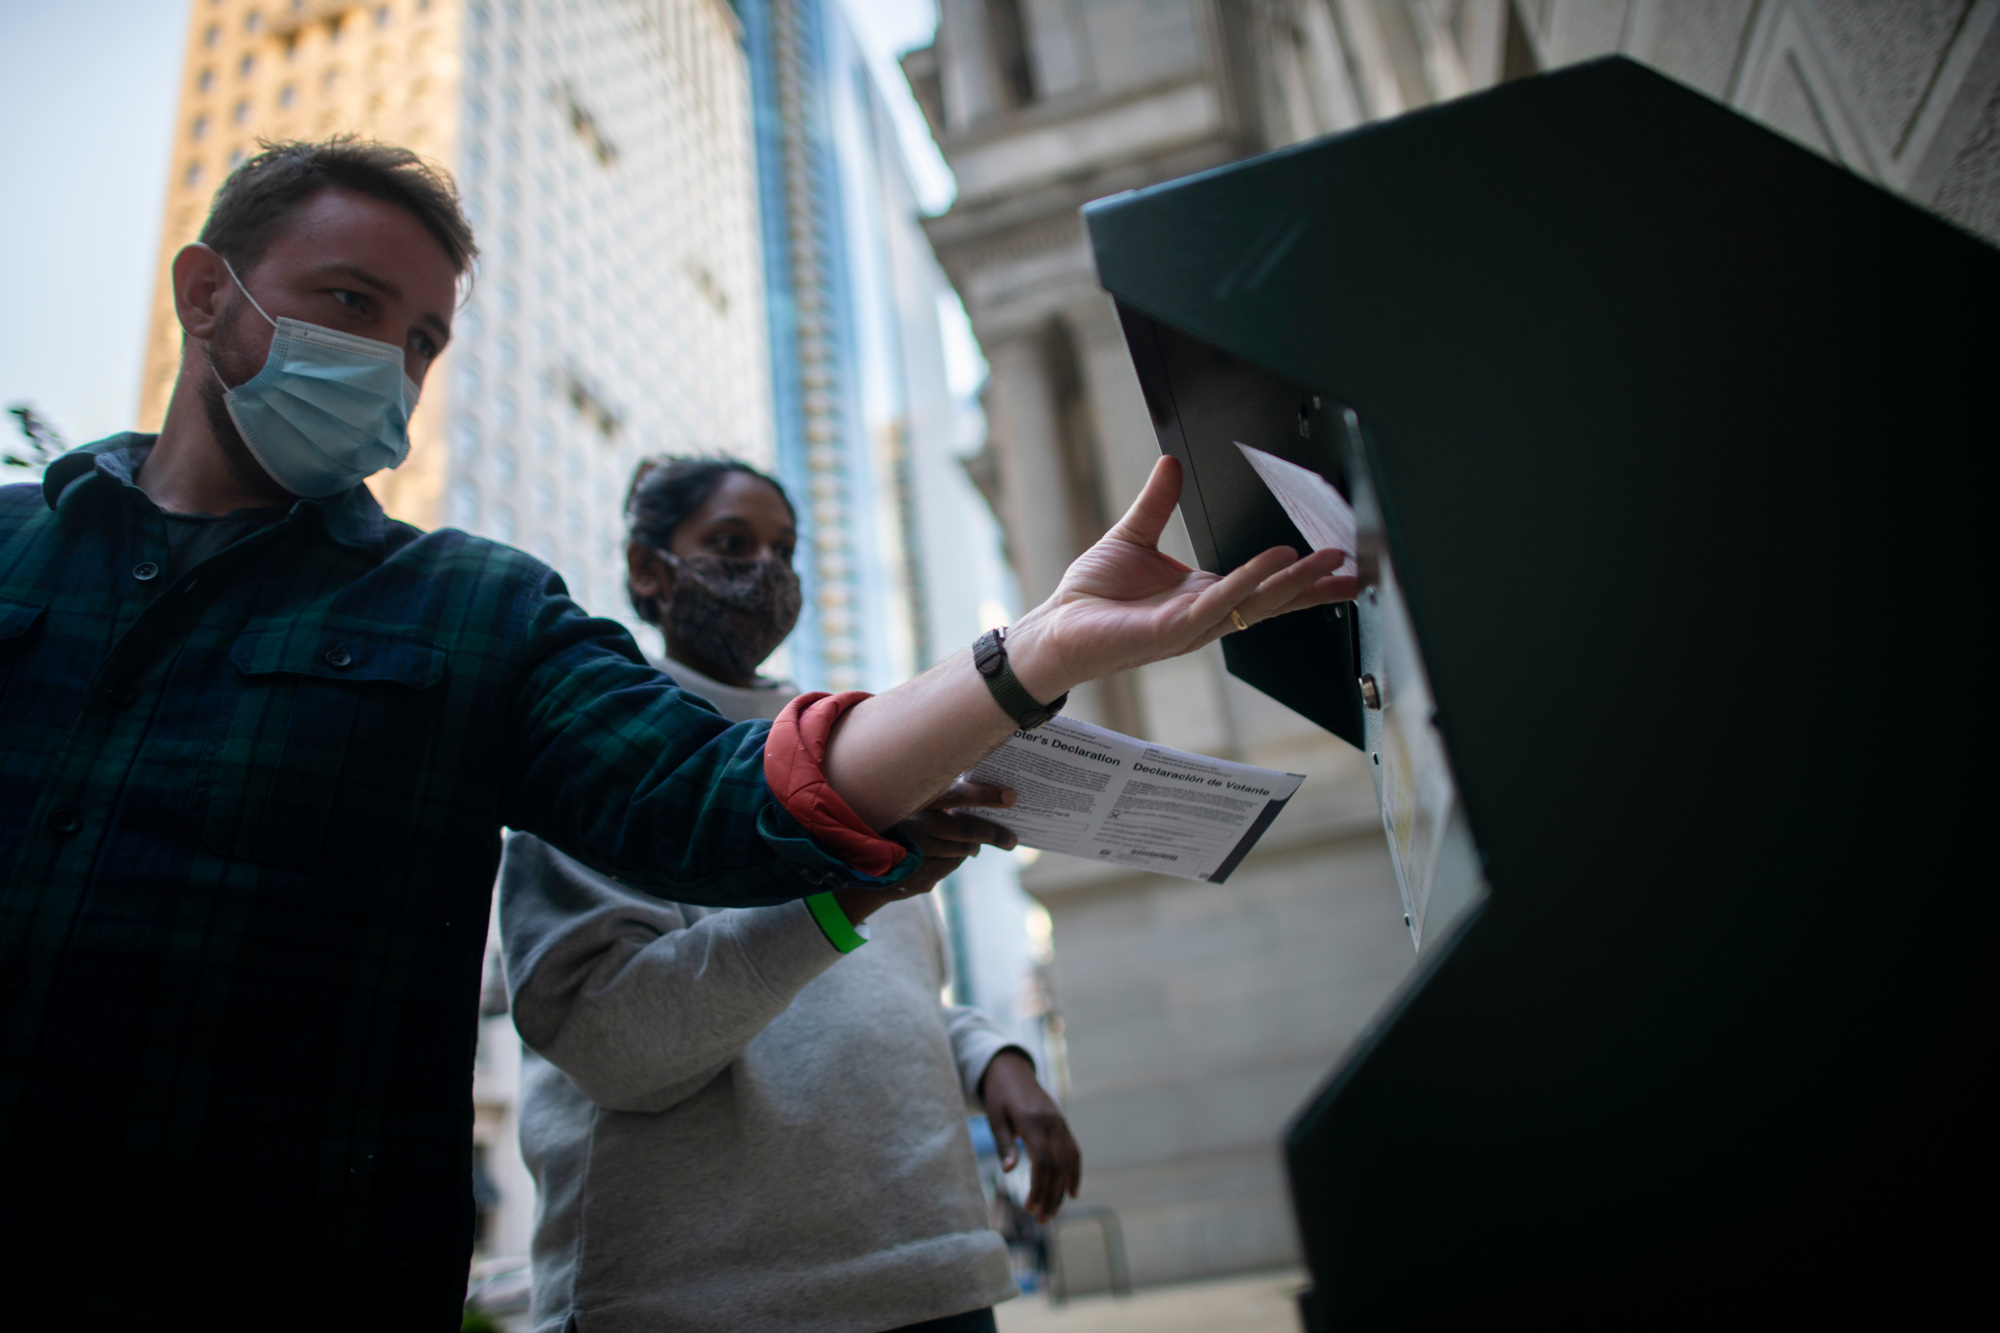 Voters cast their early voting ballot at drop box outside of City Hall on October 17 in Philadelphia, Pennsylvania.